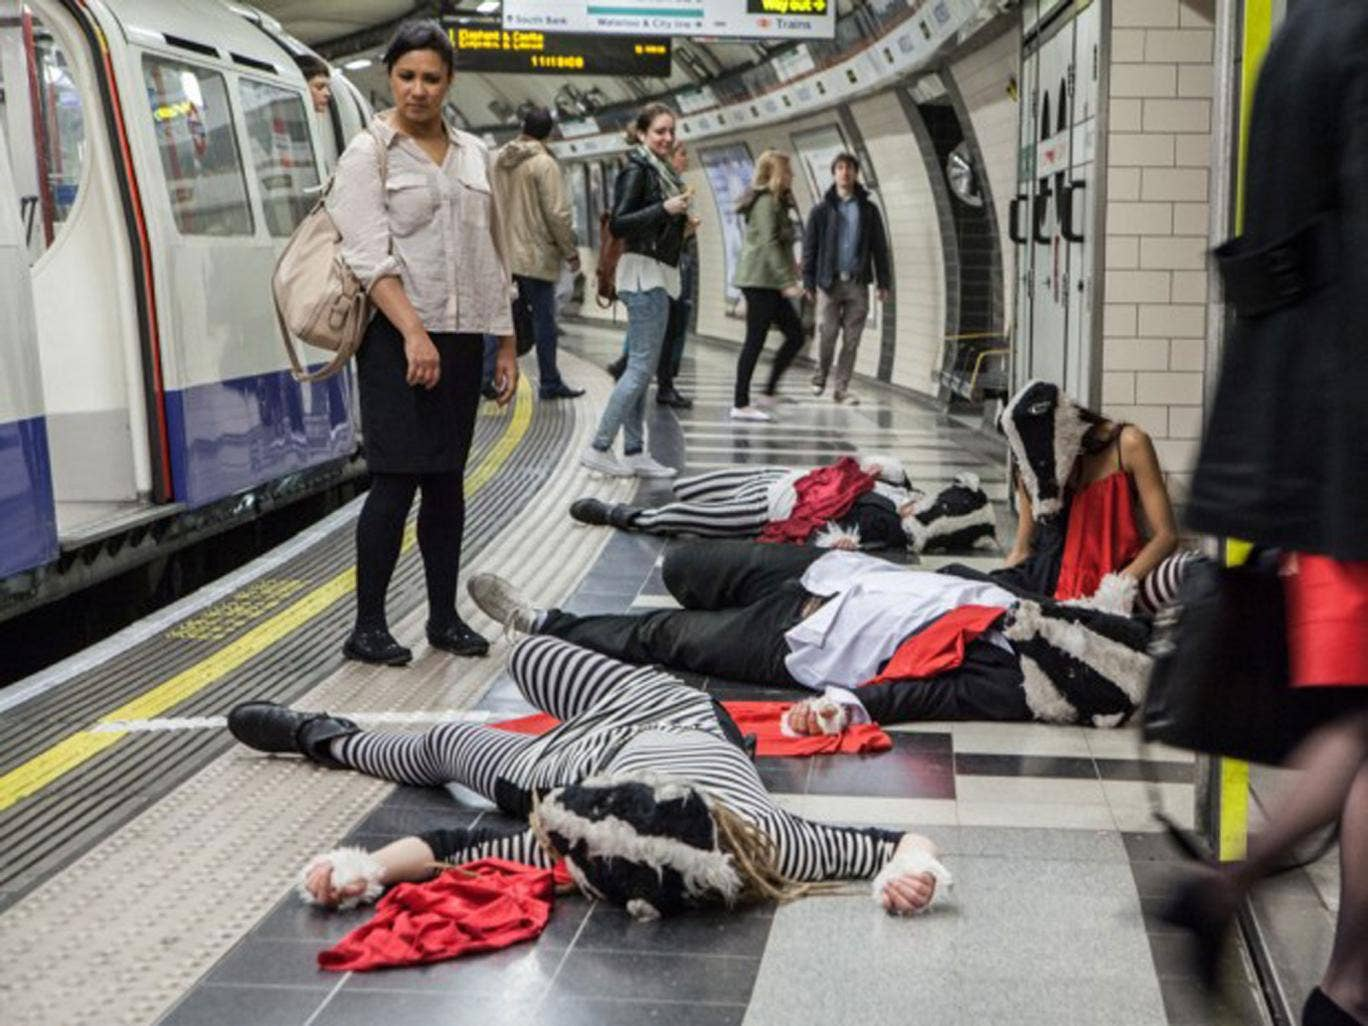 Badger activists demonstrate on the London Underground